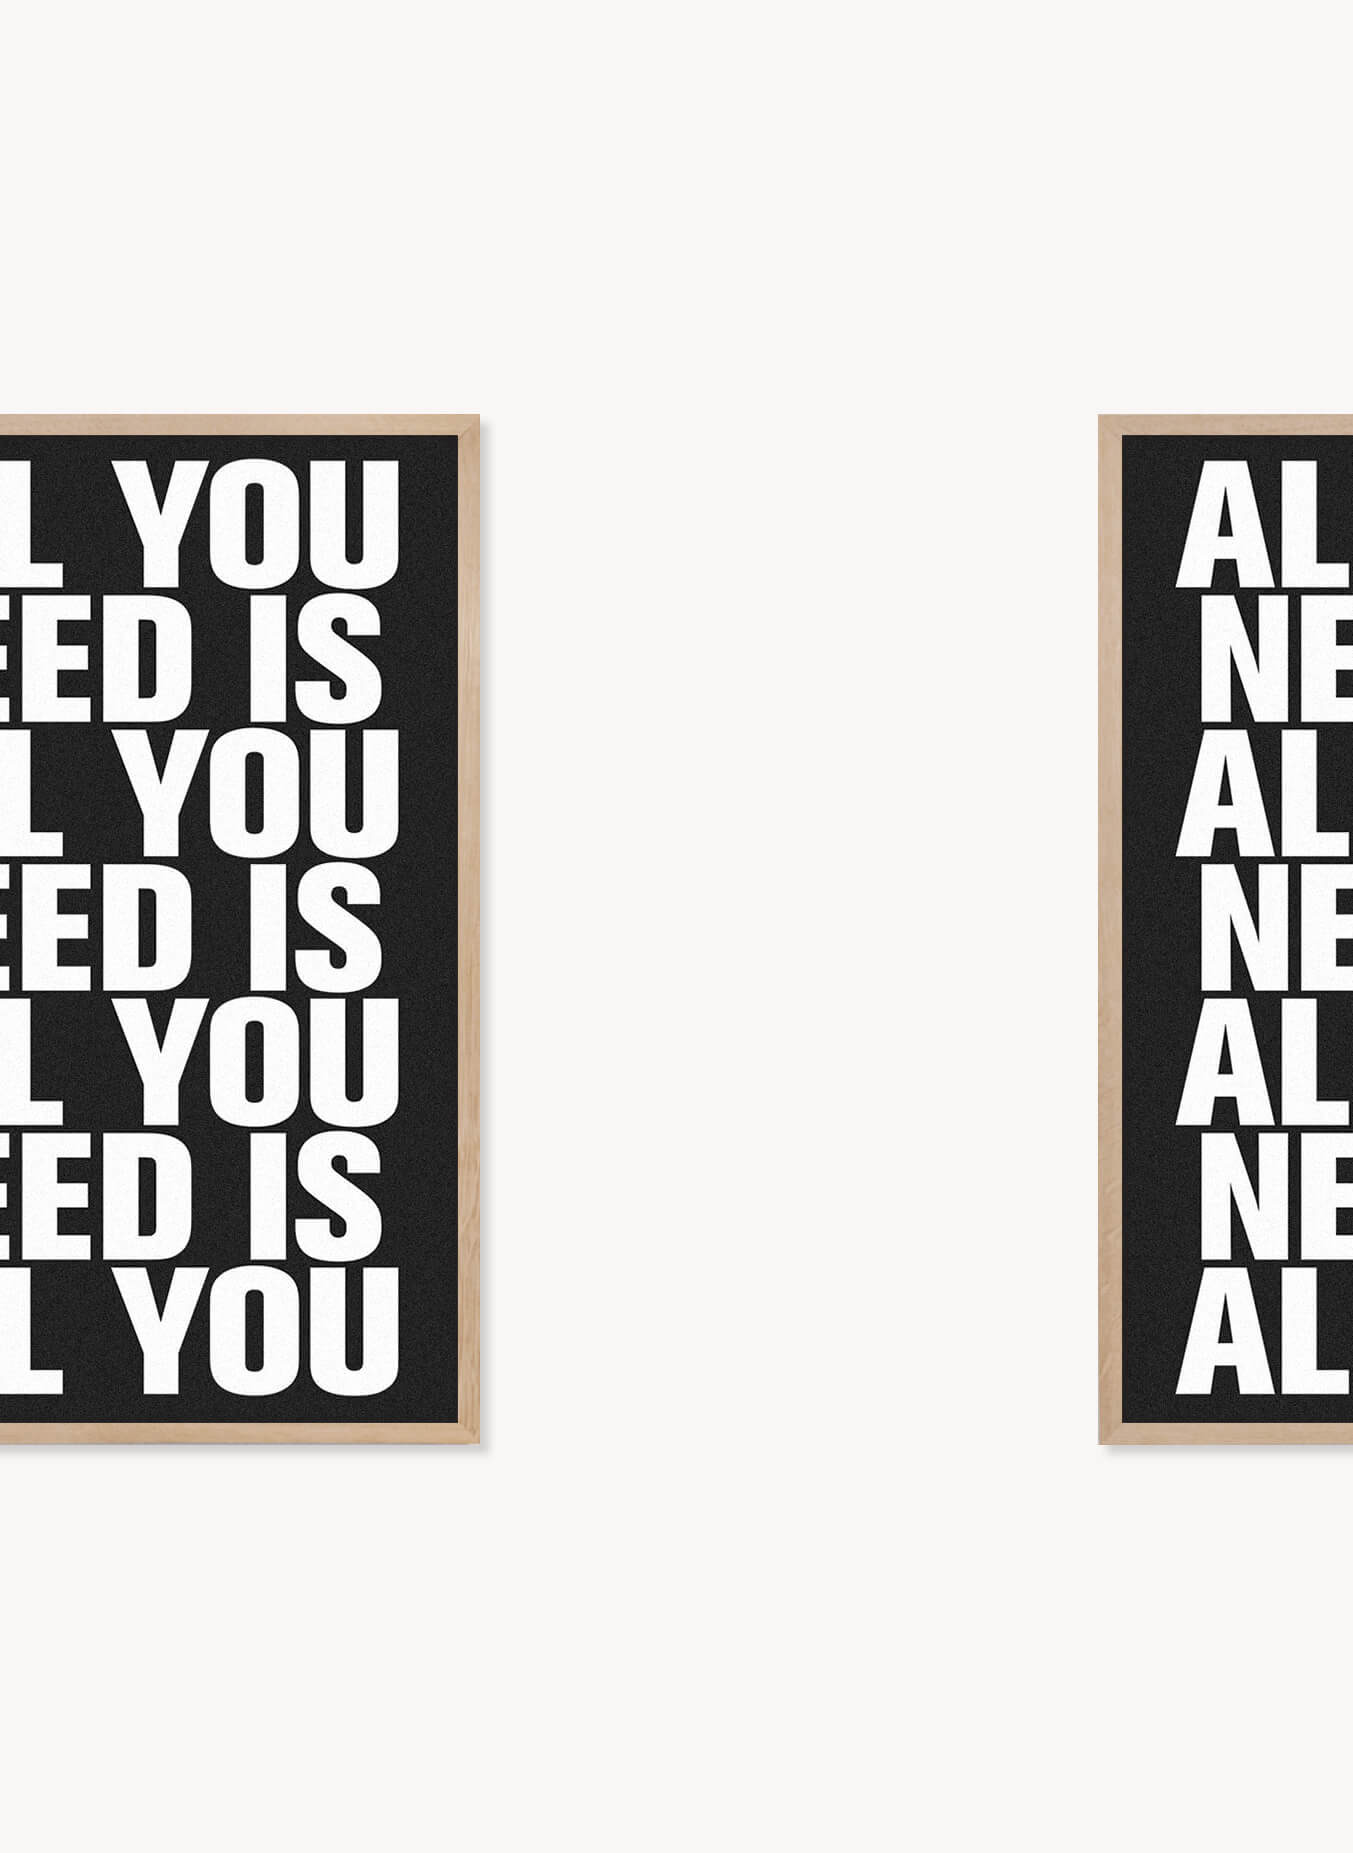 Daniel_Angermann_All_you_need_Poster All you need is all you